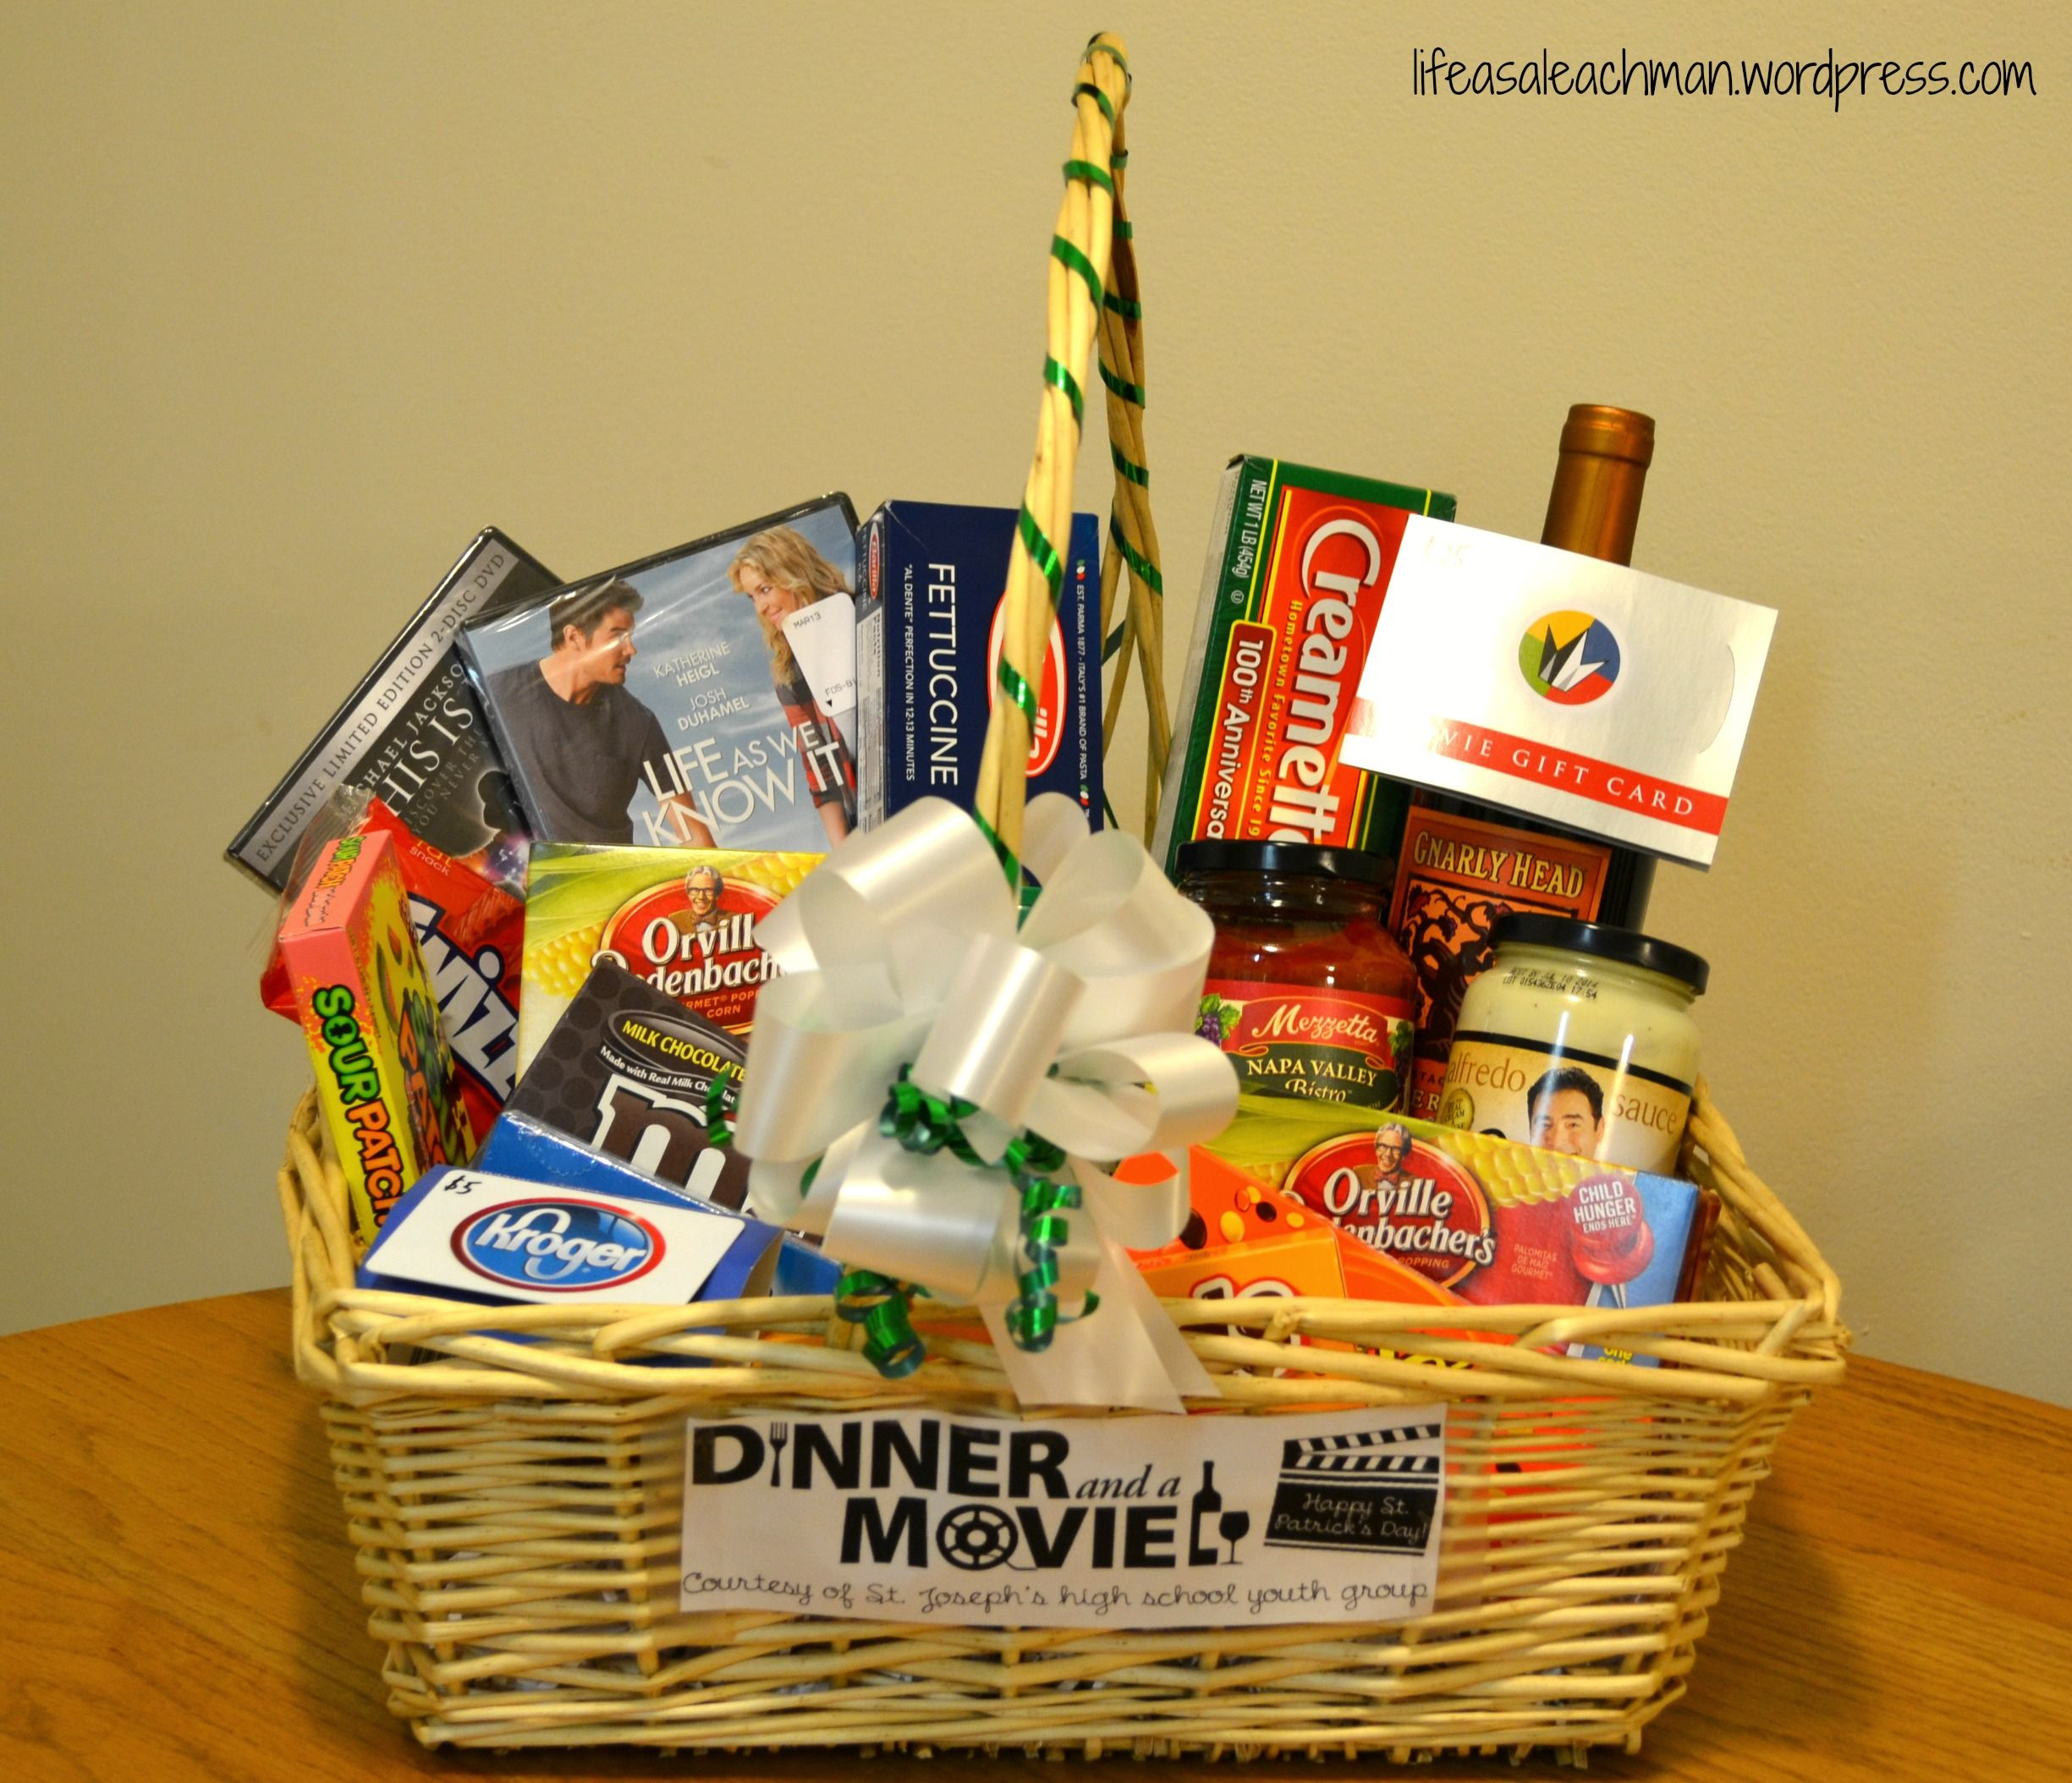 Dinner & a Movie' gift basket. | Dinners, Movie and Gift